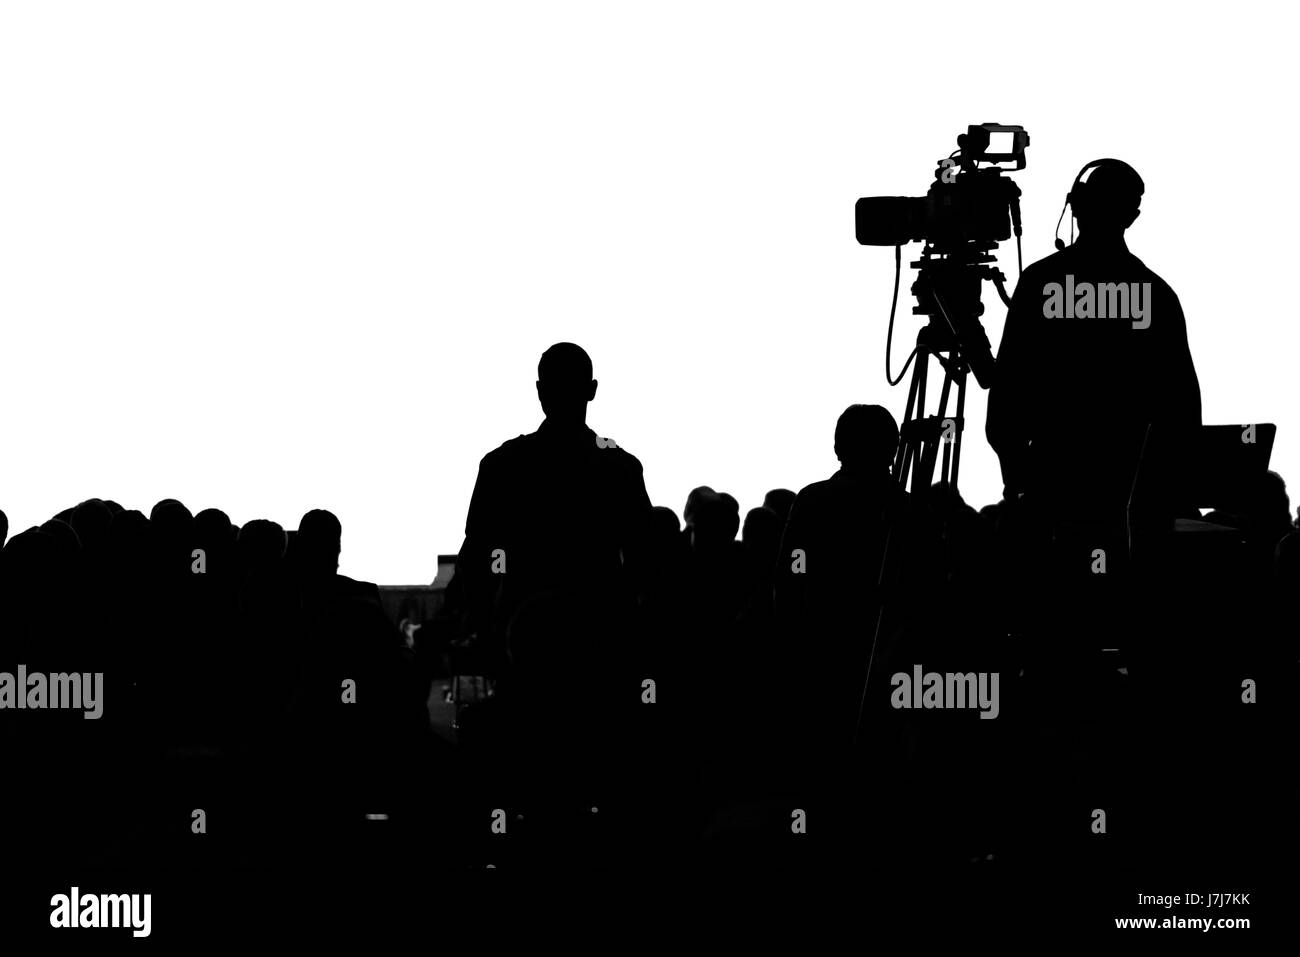 Television Press Conference production cameraman silhouette - Stock Image